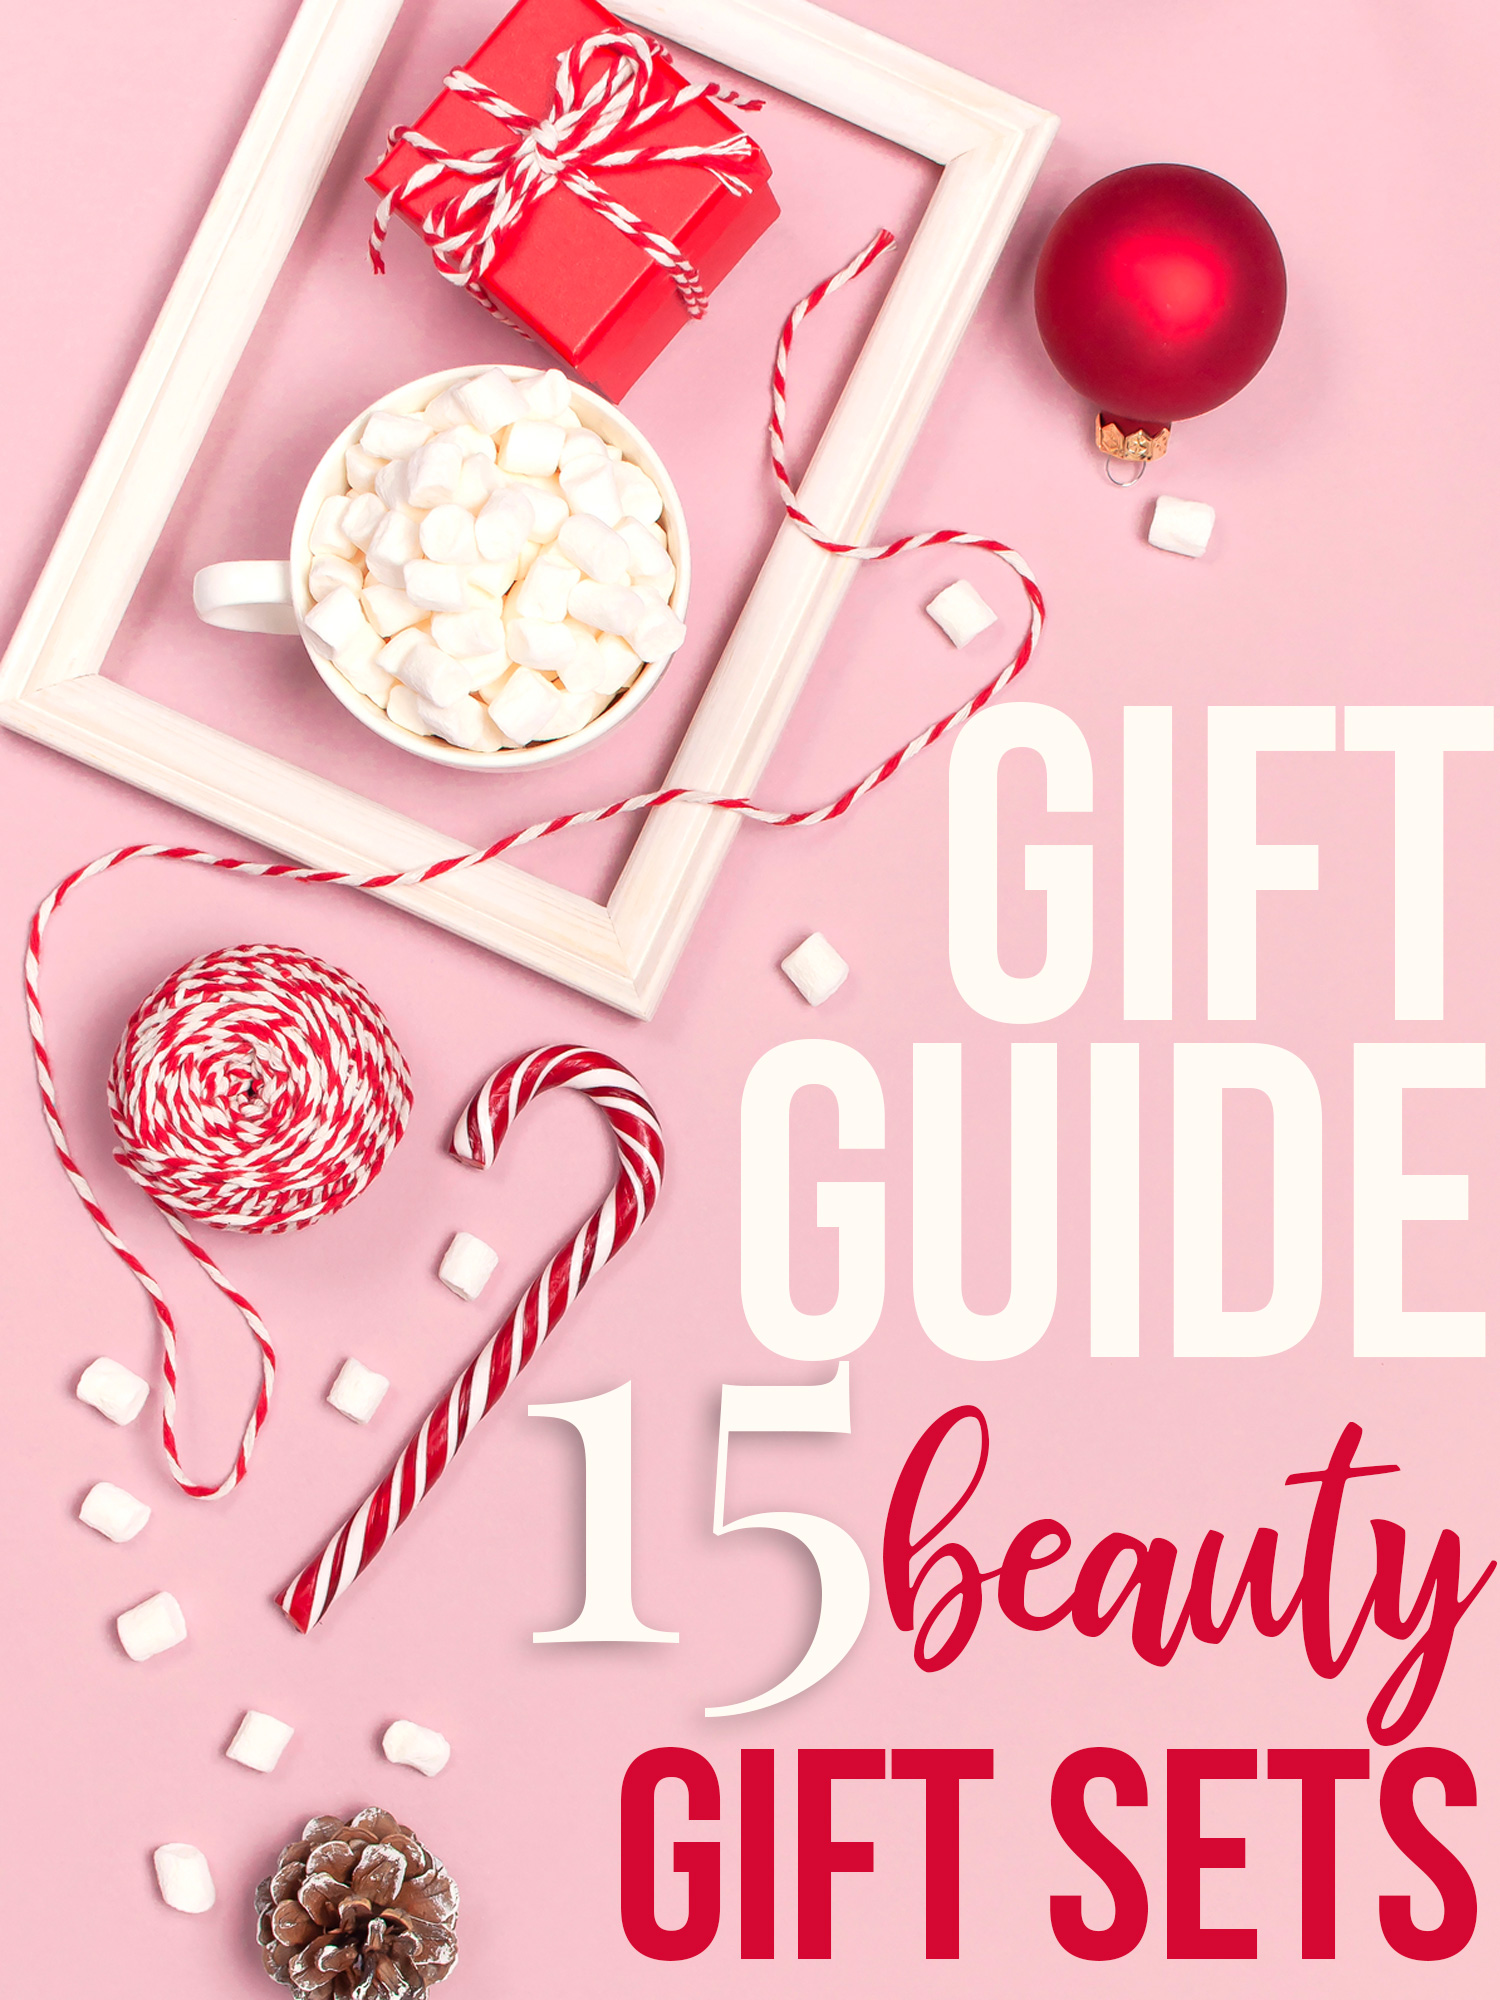 15 Great Beauty Gift Sets to Give this Year